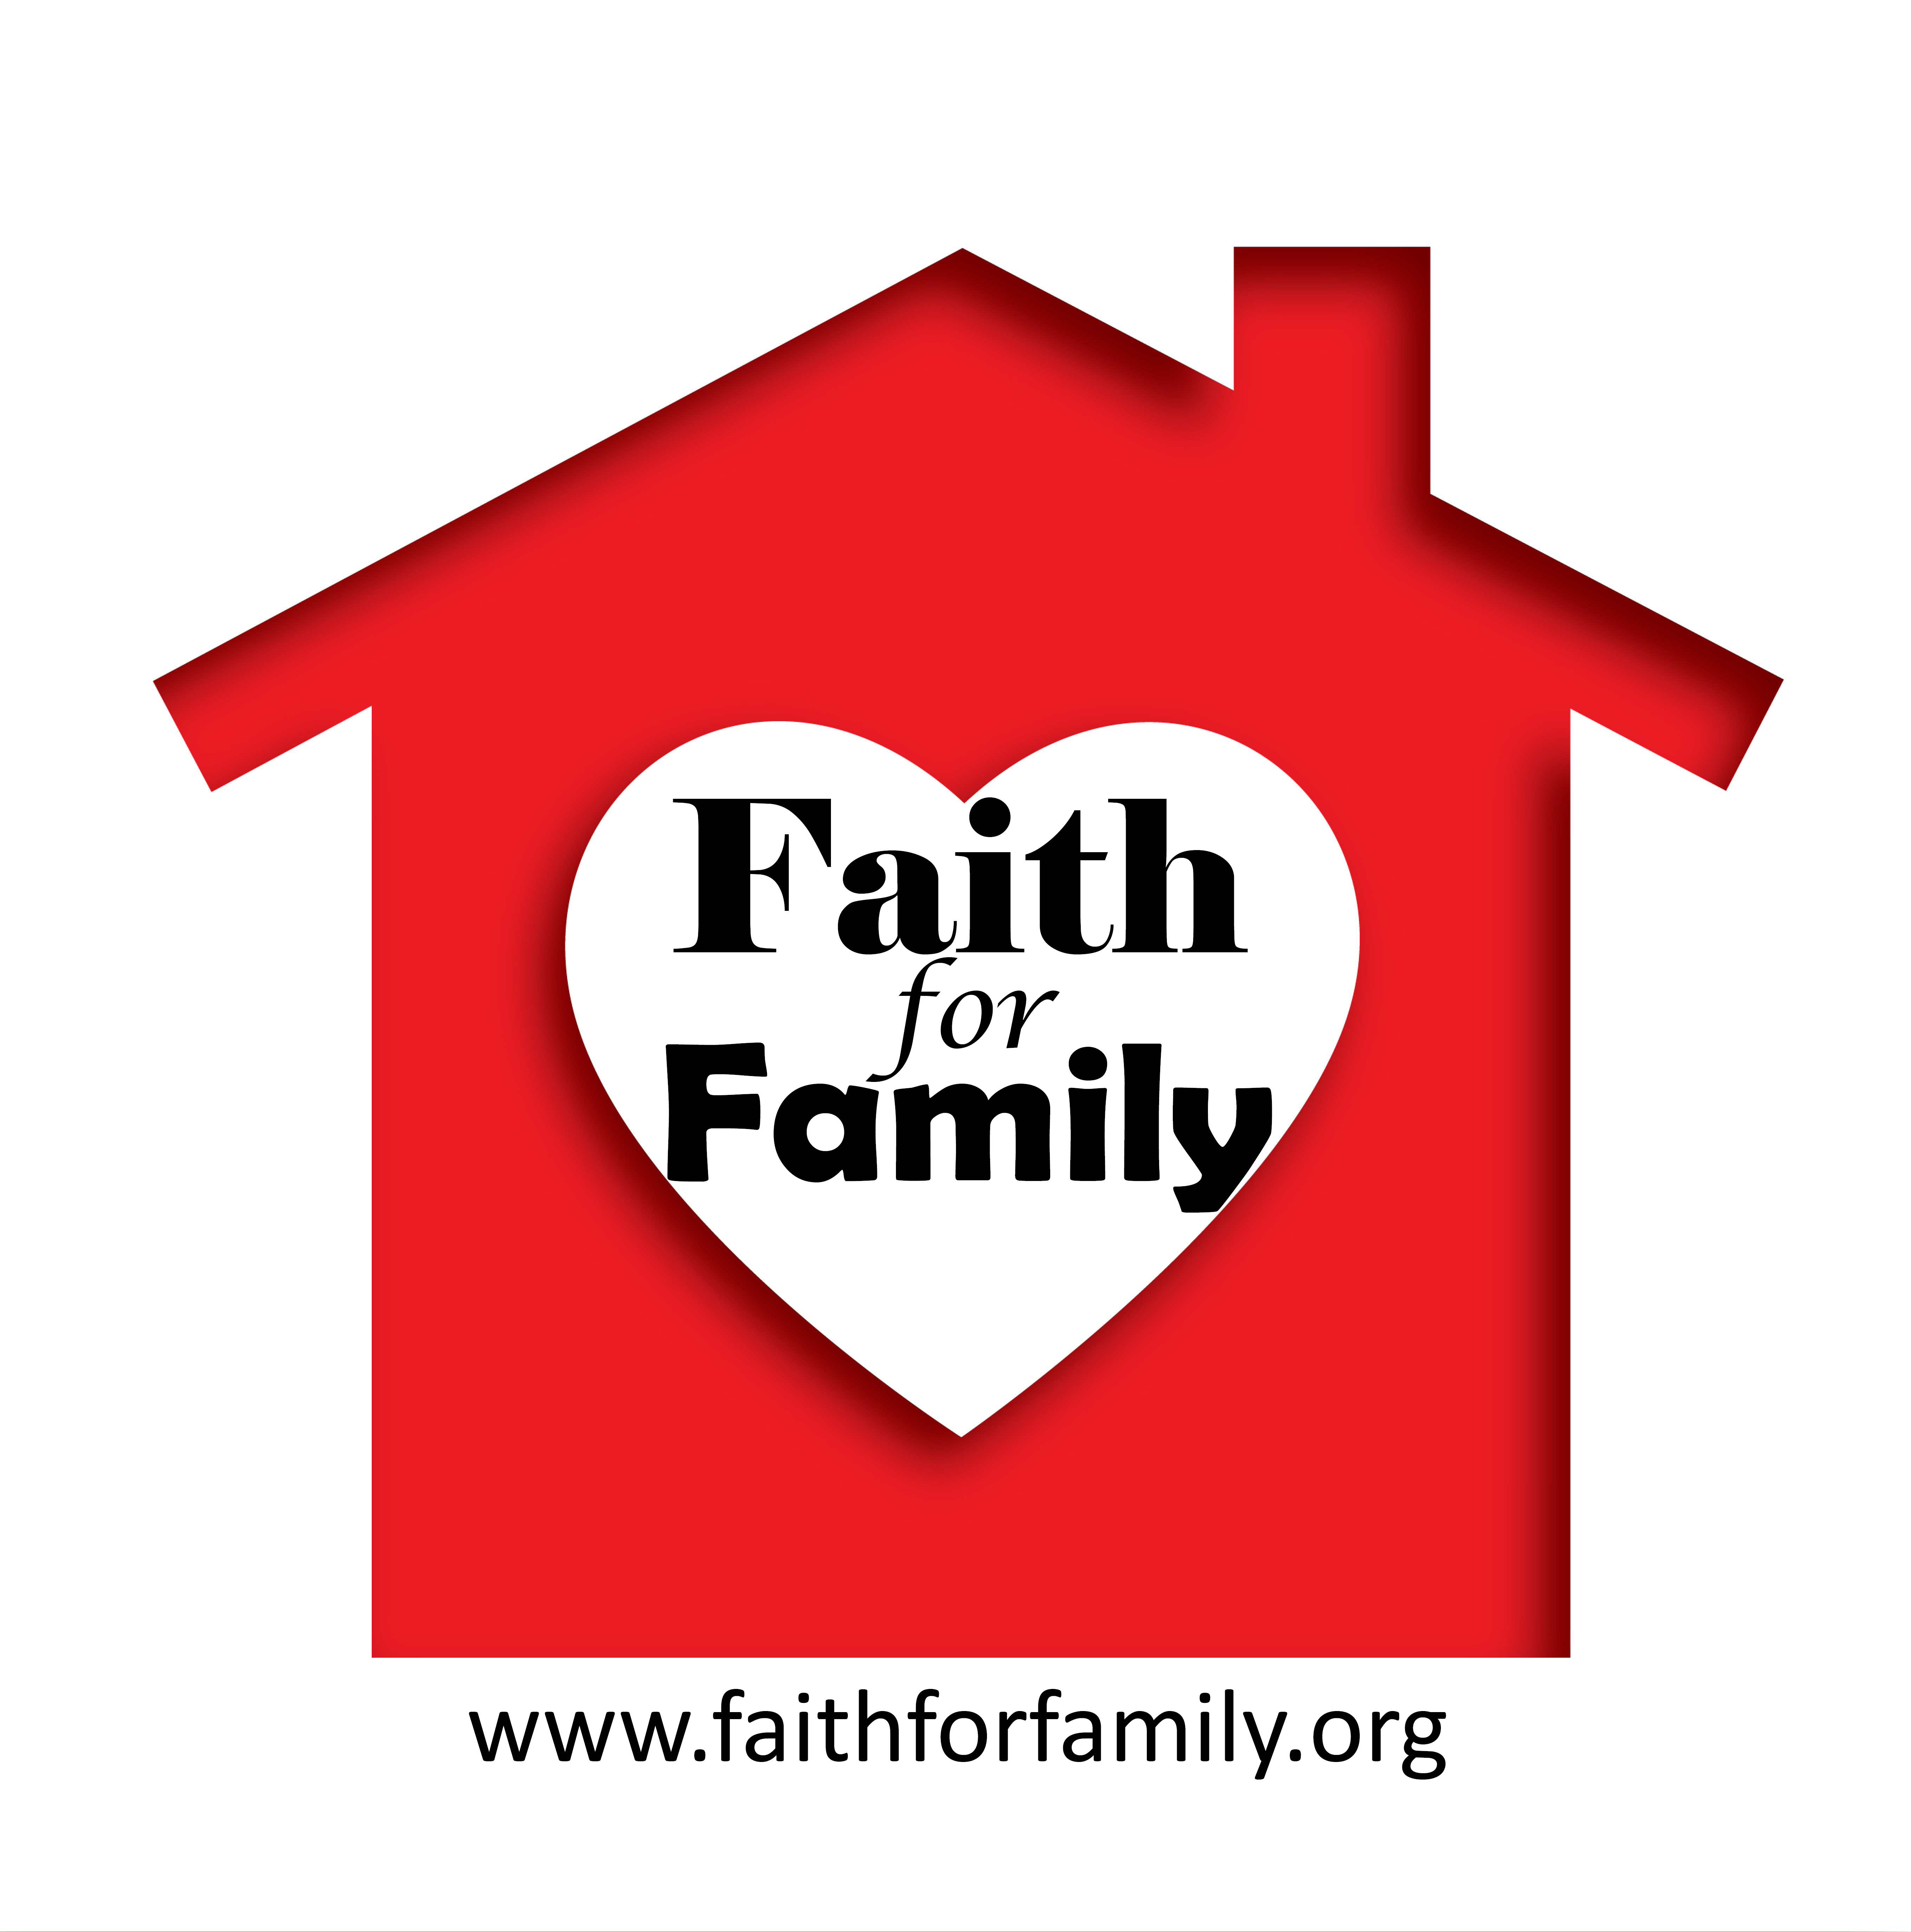 FAITH FOR FAMILY